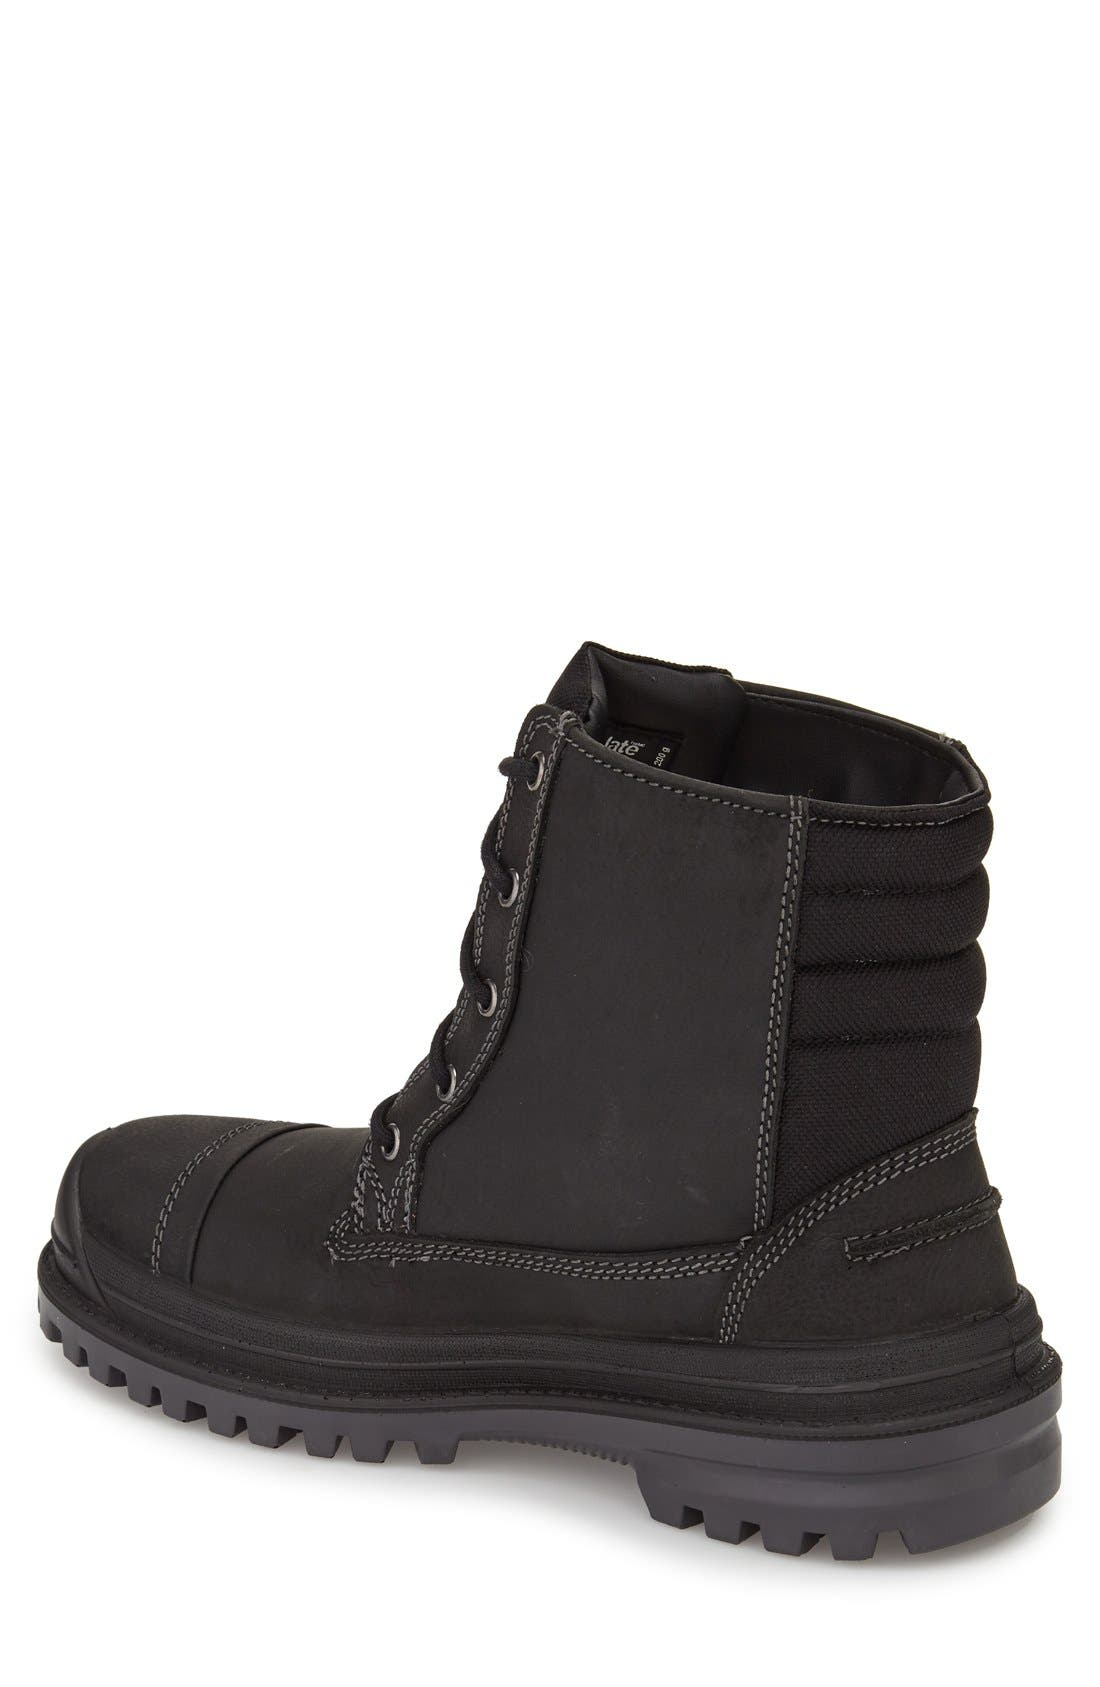 Alternate Image 2  - Kamik Griffon Waterproof Boot (Men)